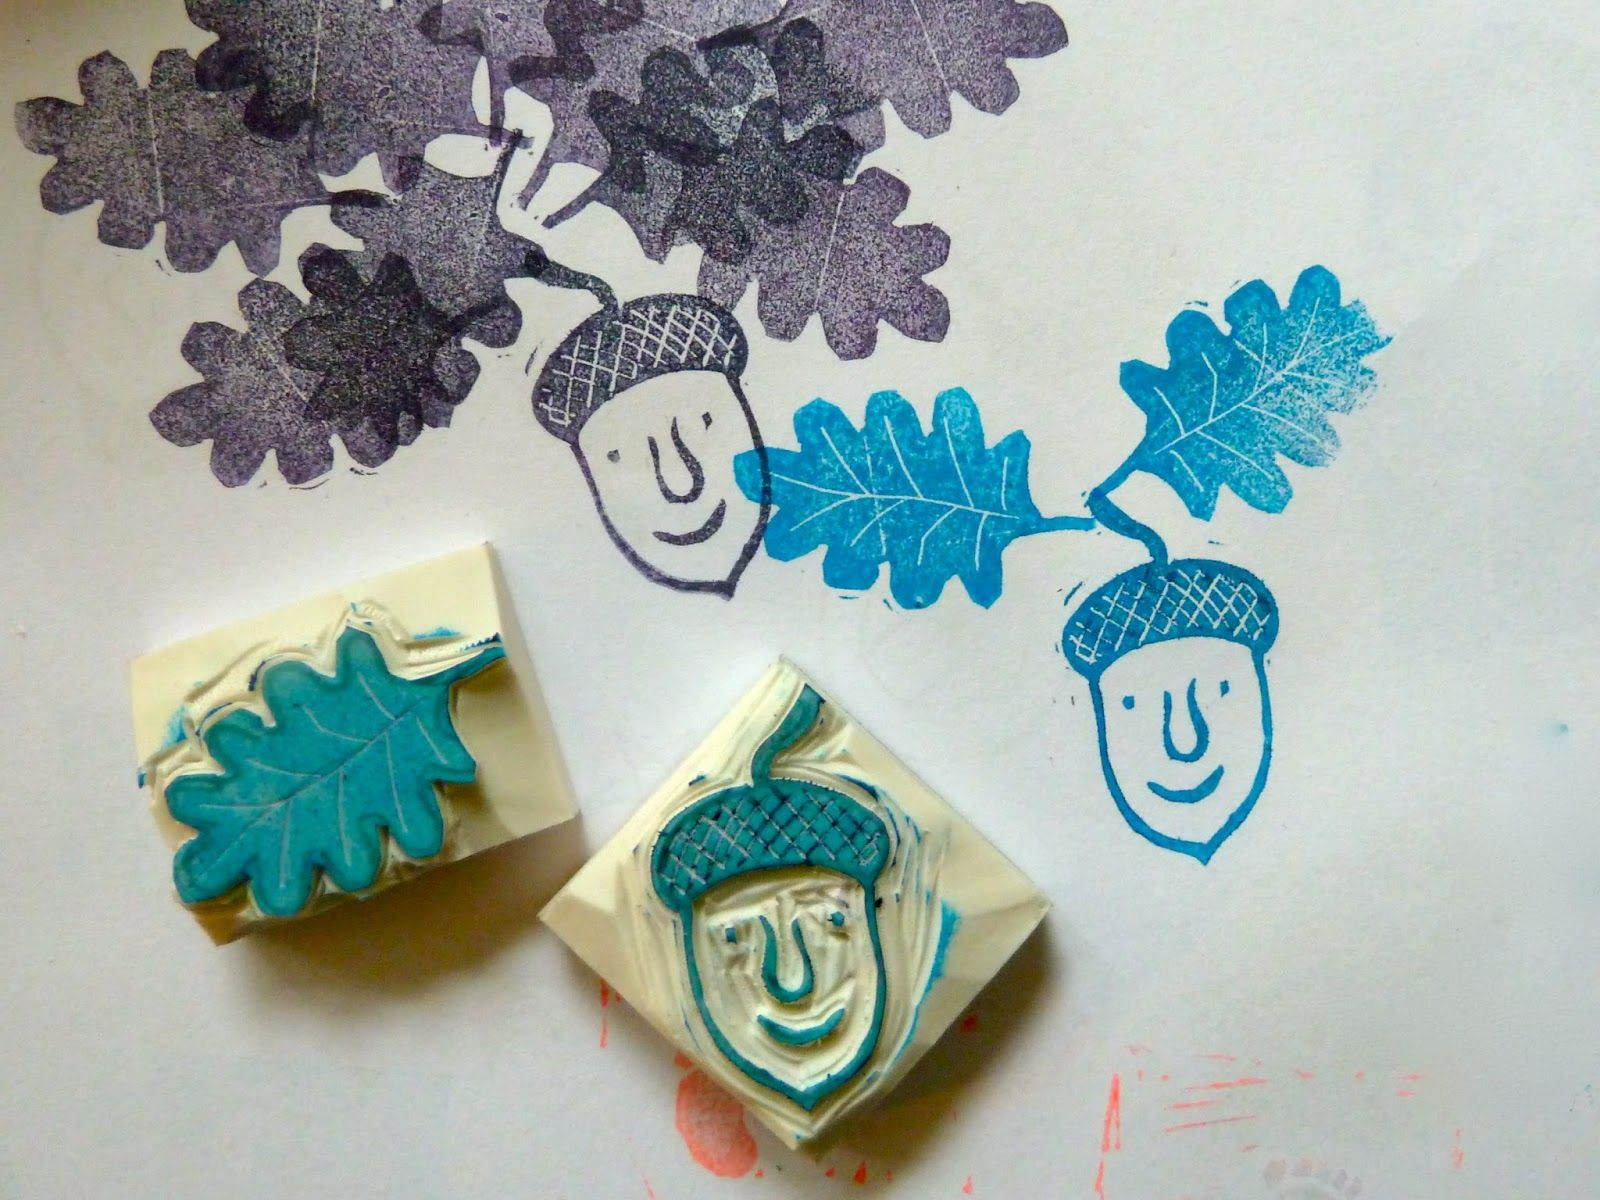 a Stamp a Day: 2 stamp carving workshops